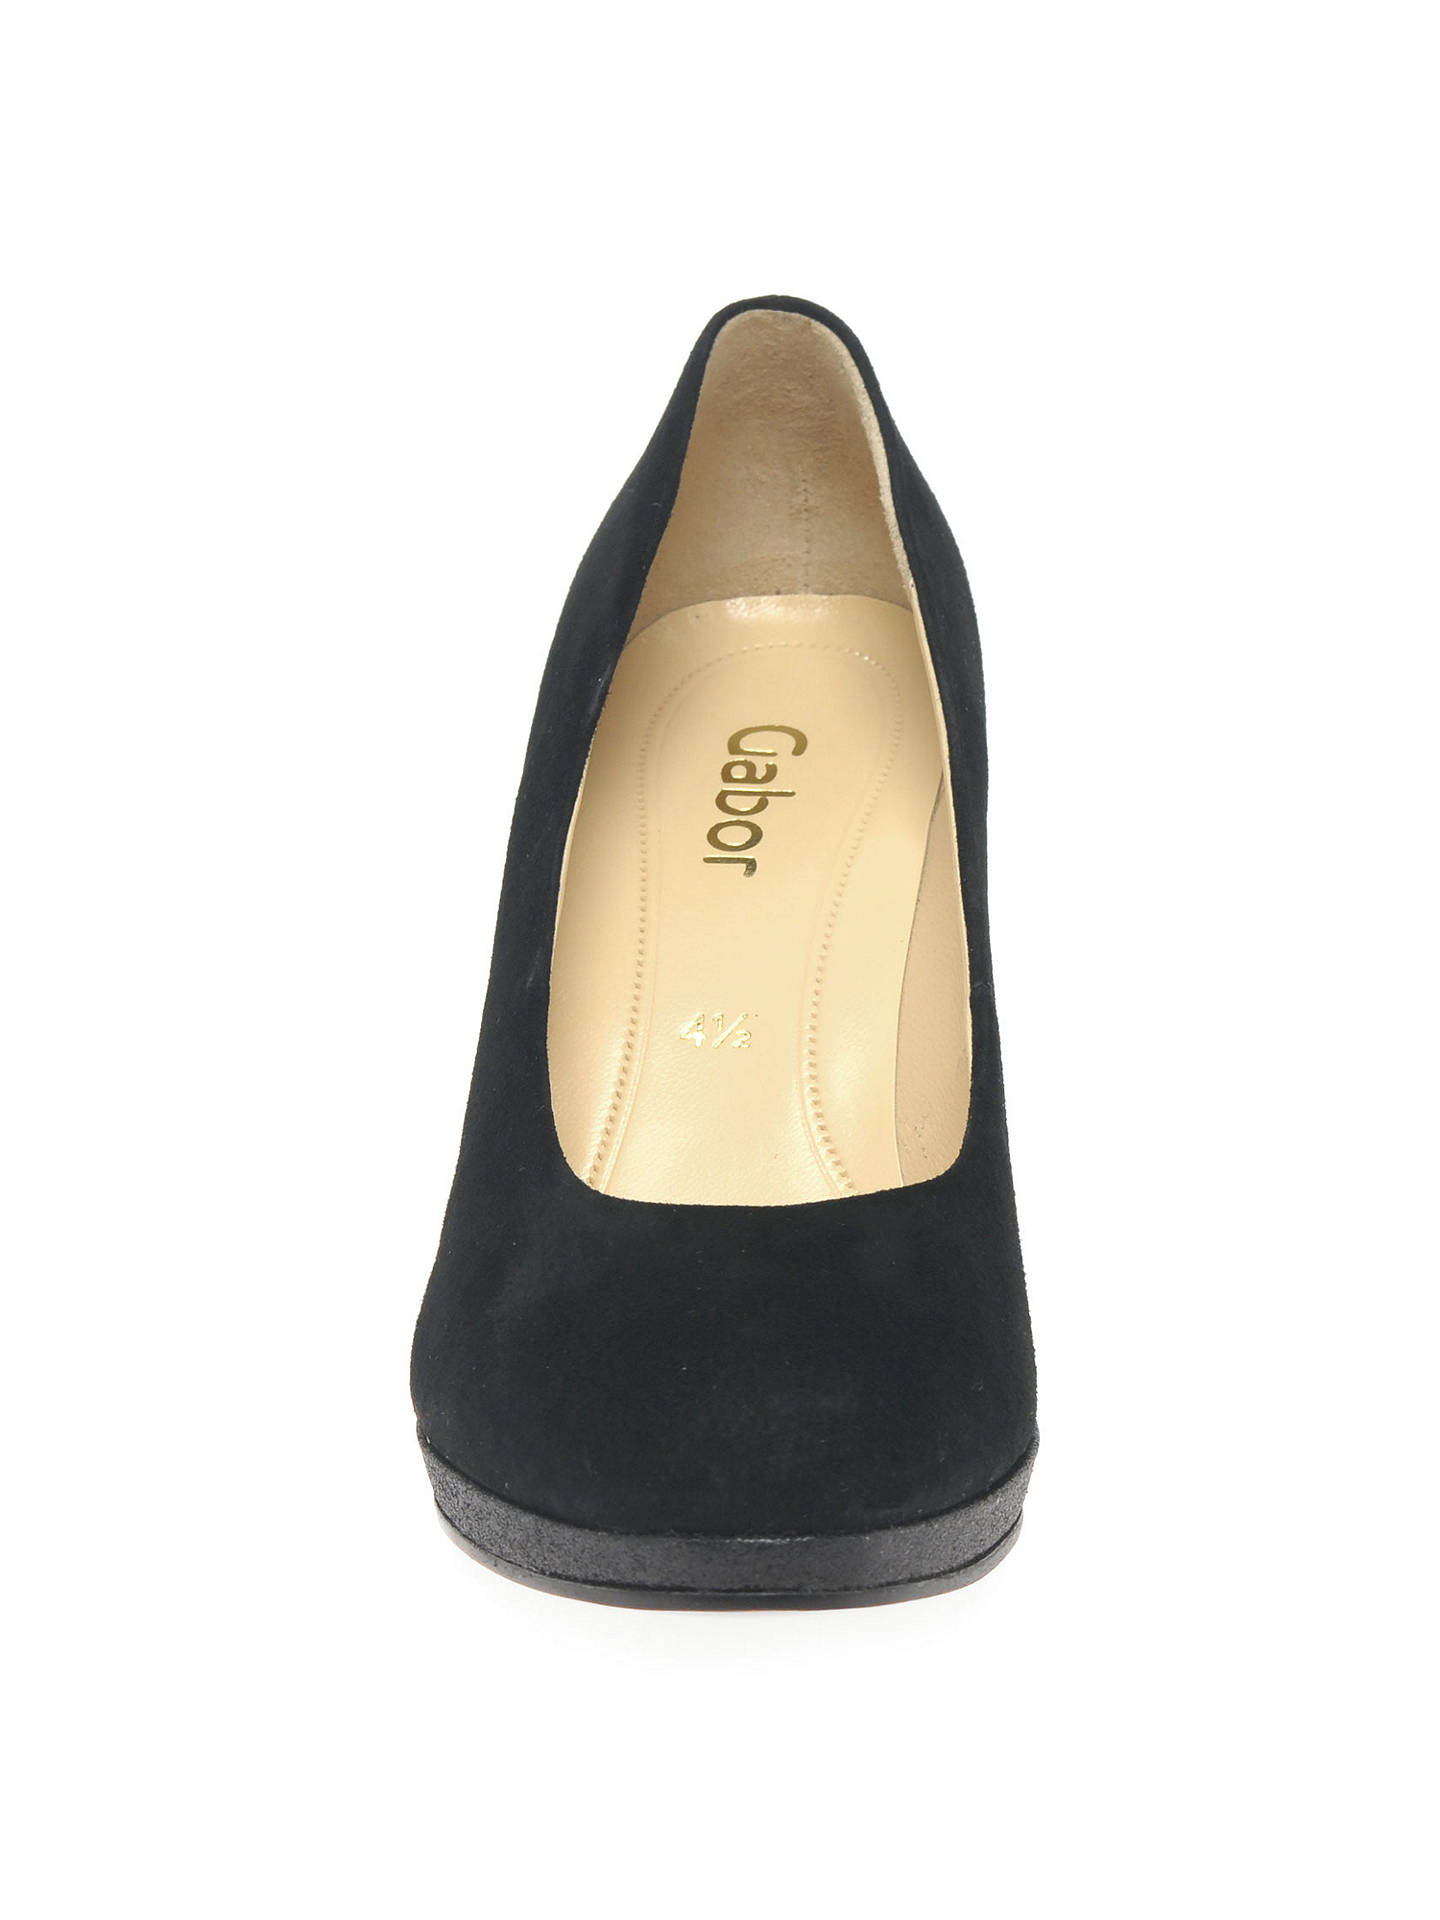 9959449a8eb Gabor Splendid Block Heeled Court Shoes at John Lewis   Partners